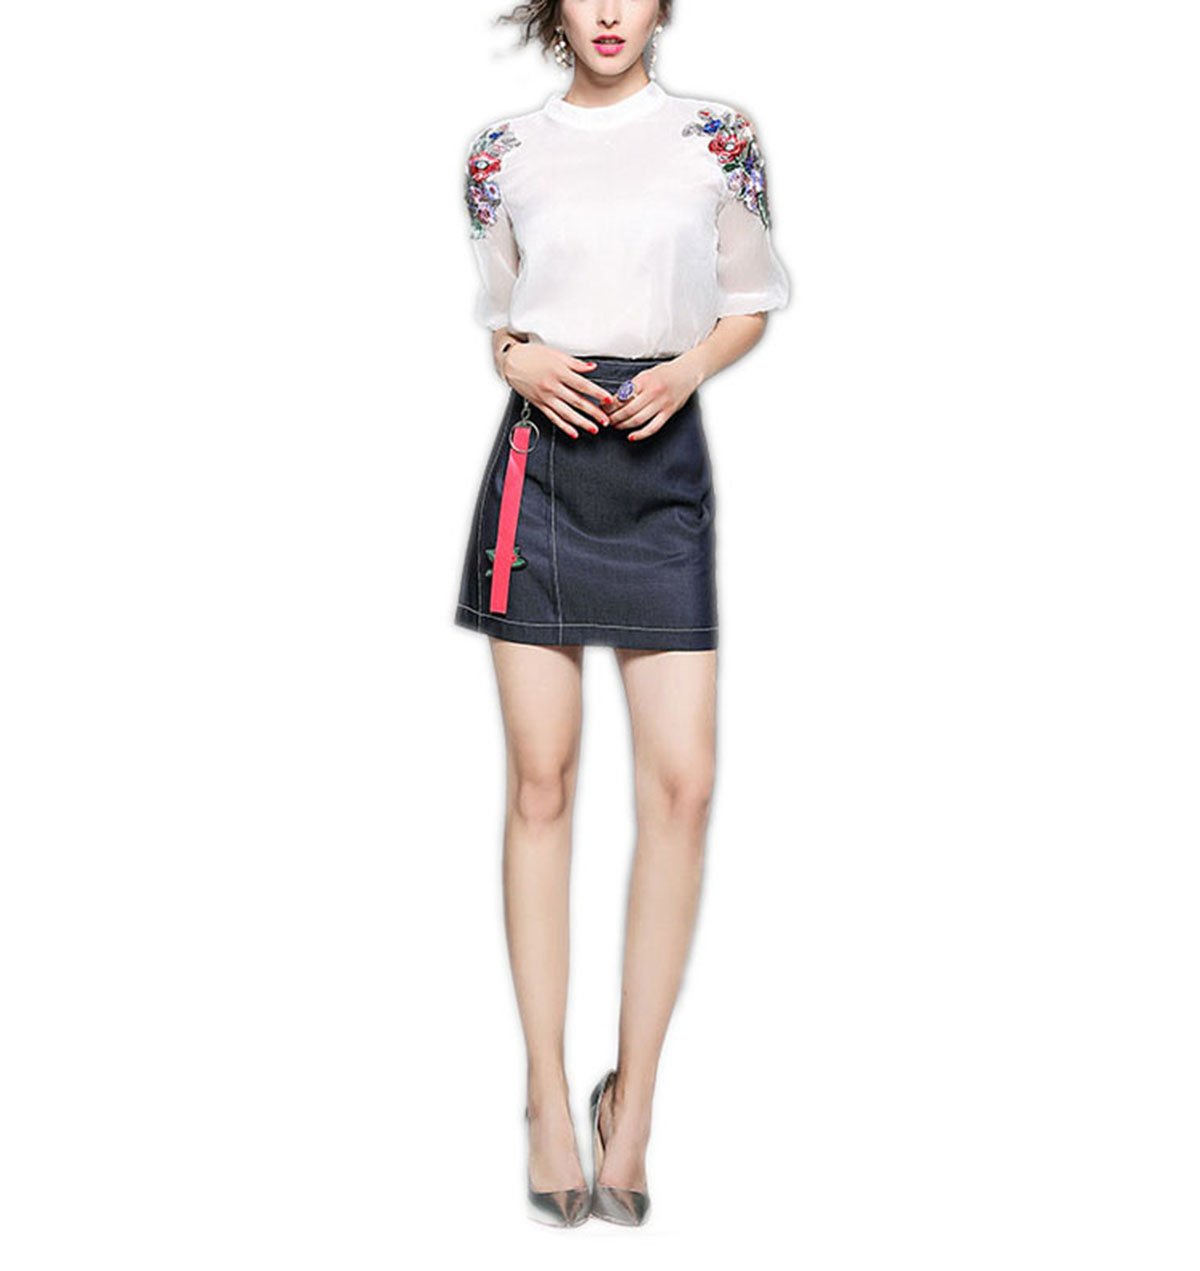 Weing New Women's Sexy Embroidery Blouse With Denim Skirts 2 Piece Dresses White XL by Weing